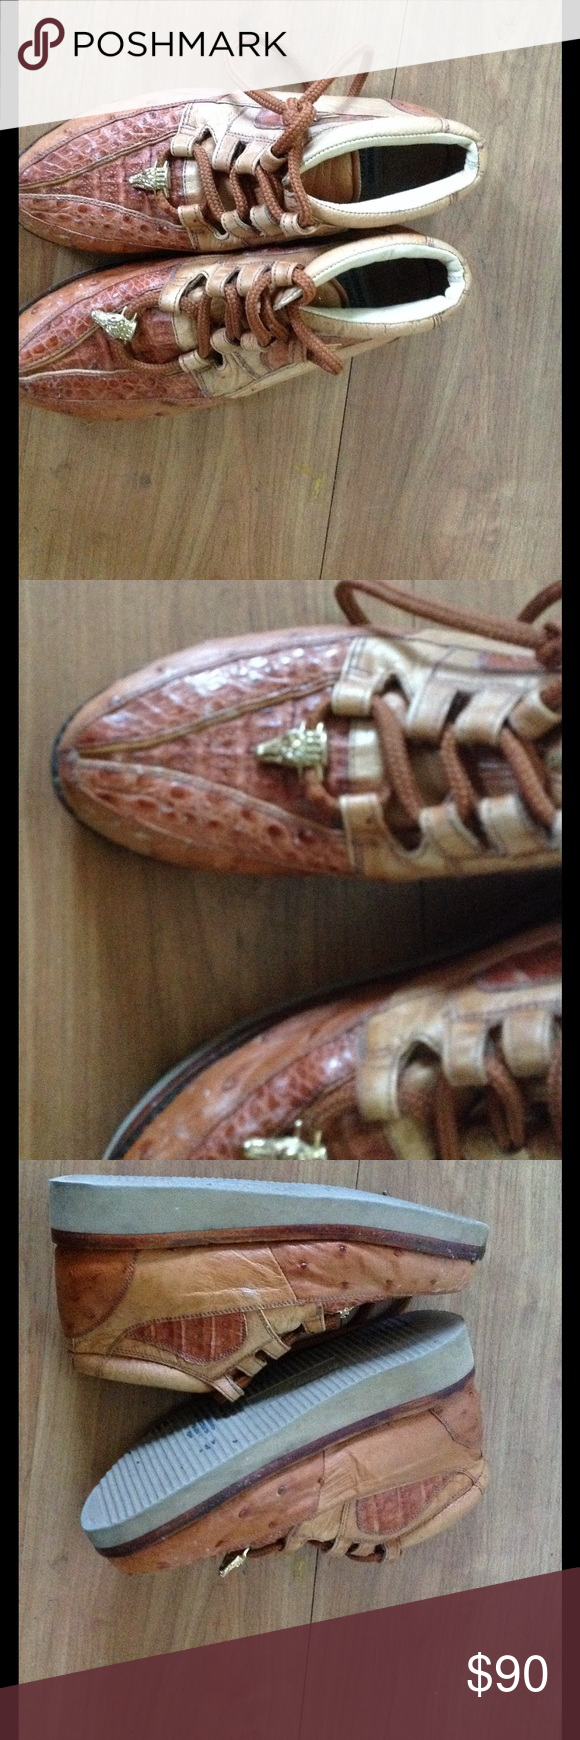 Men's crocodile shoes Crocodile leather shoes with crocodile charm on shoe laces made in USA Hermanos Franco Leather cowboy shoes hermanos franco  Shoes Cowboy & Western Boots